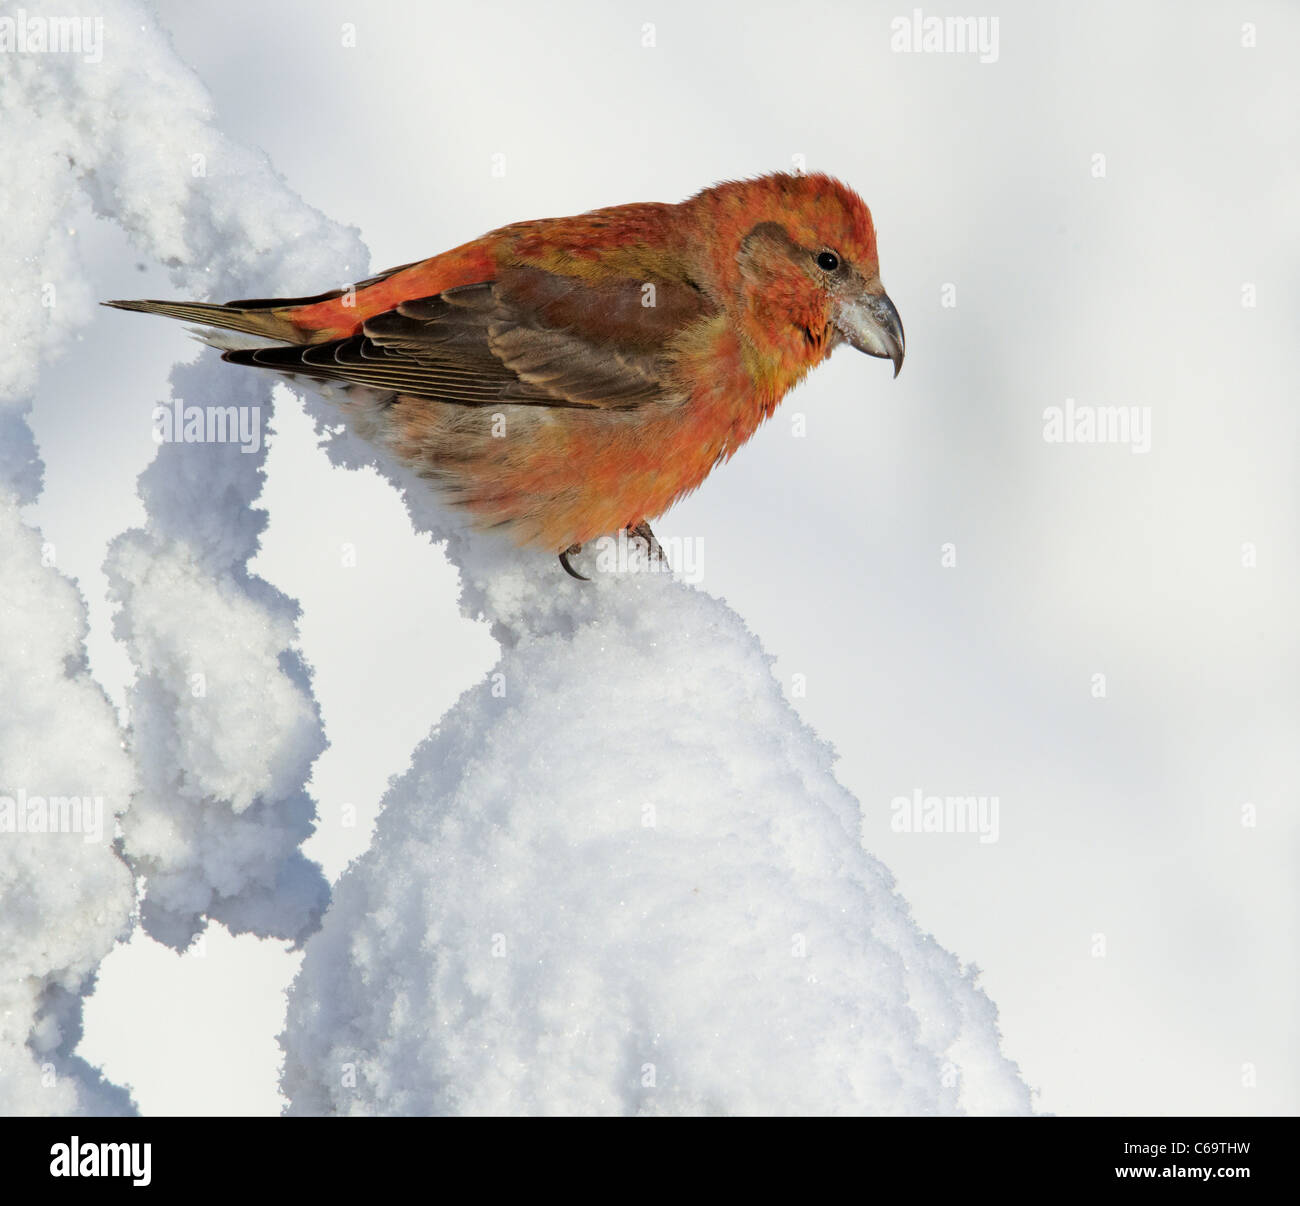 Common Crossbill, Red Crossbill (Loxia curvirostra). Male perched in a snowy spruce. Stock Photo